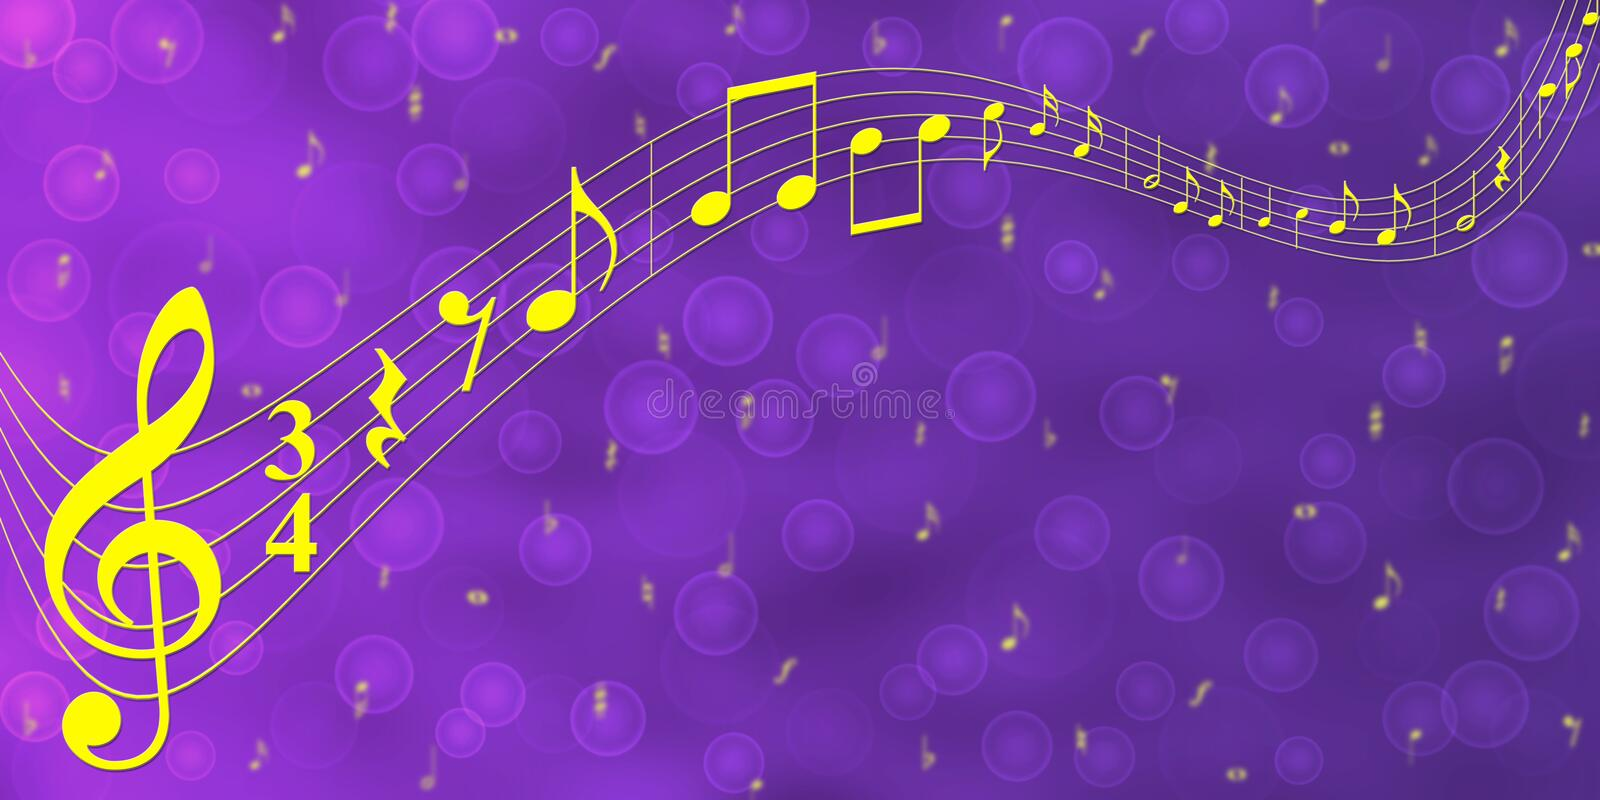 Yellow Music Notes In Purple Gradient Banner Background Stock Image - Image  Of Blur, Artistic: 158264633